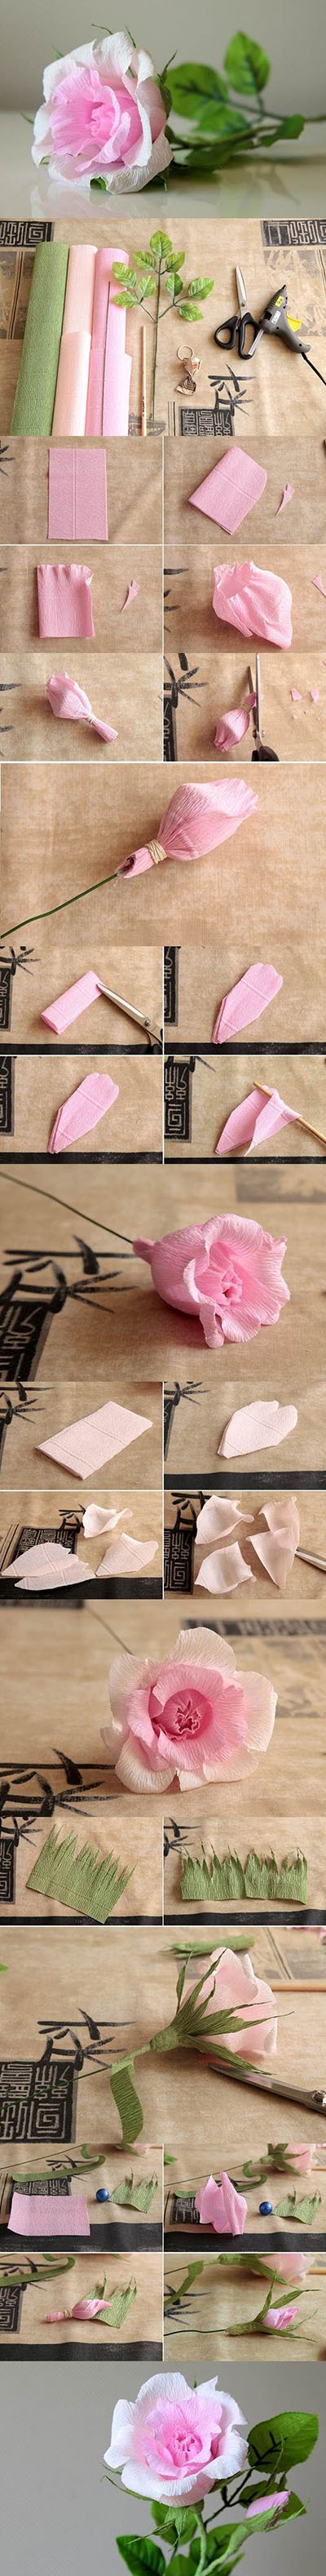 15  DIY Beautiful Crepe Paper Roses30a83c947